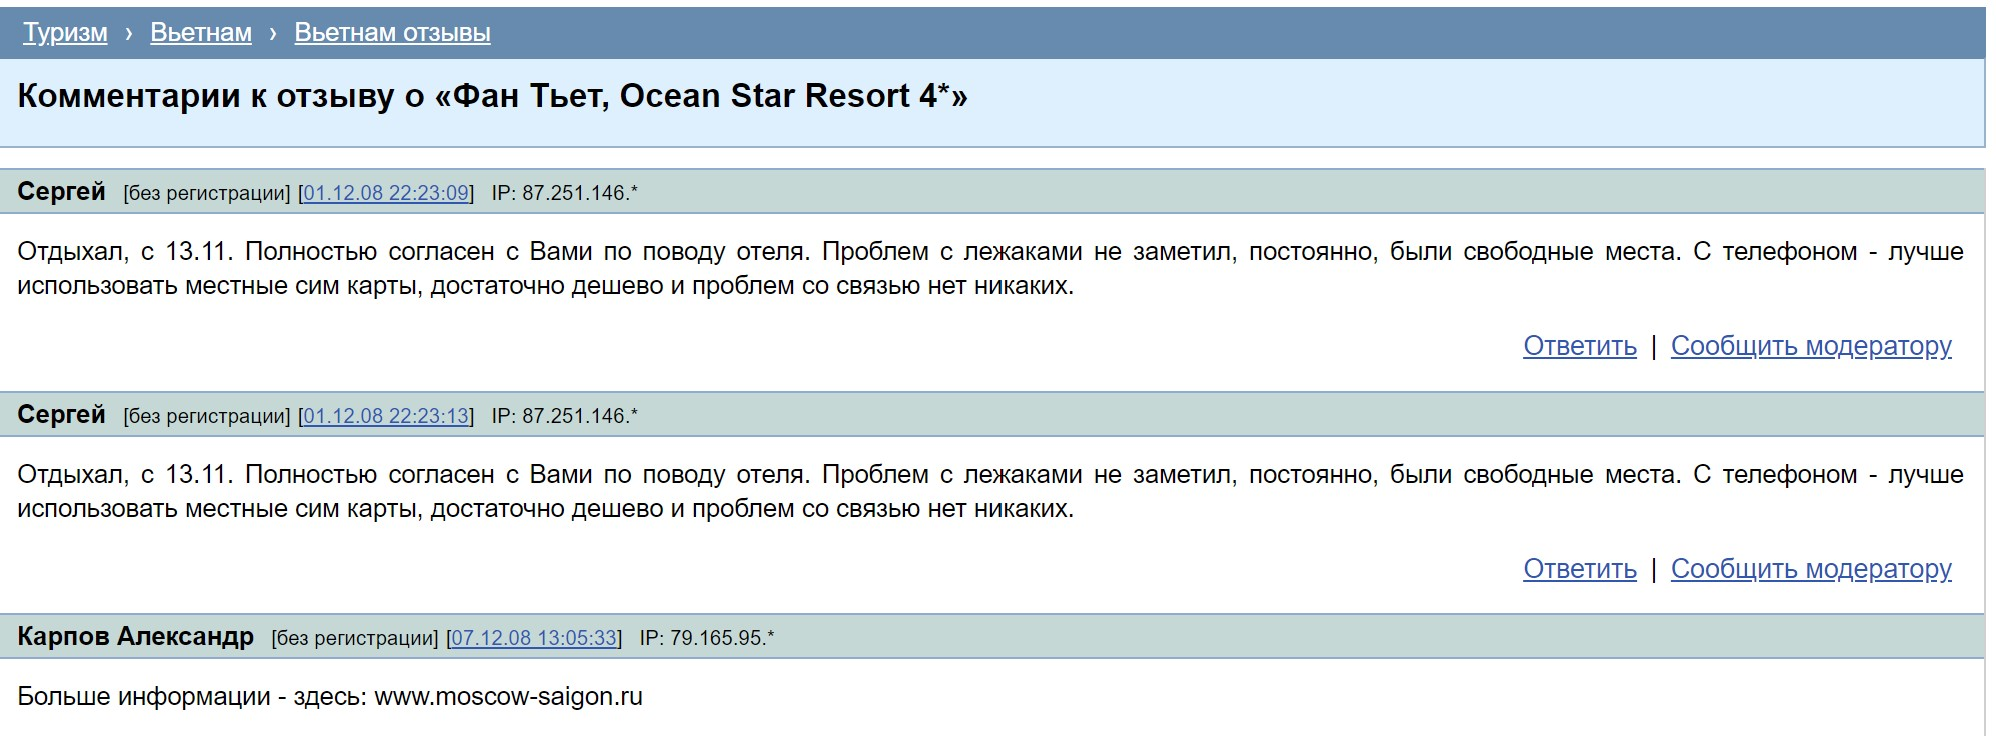 """December 1, 2008 Post by User 'Sergey"""" Who Logged in With Proxy: 87.251.146. Source: Otzyv.ru."""